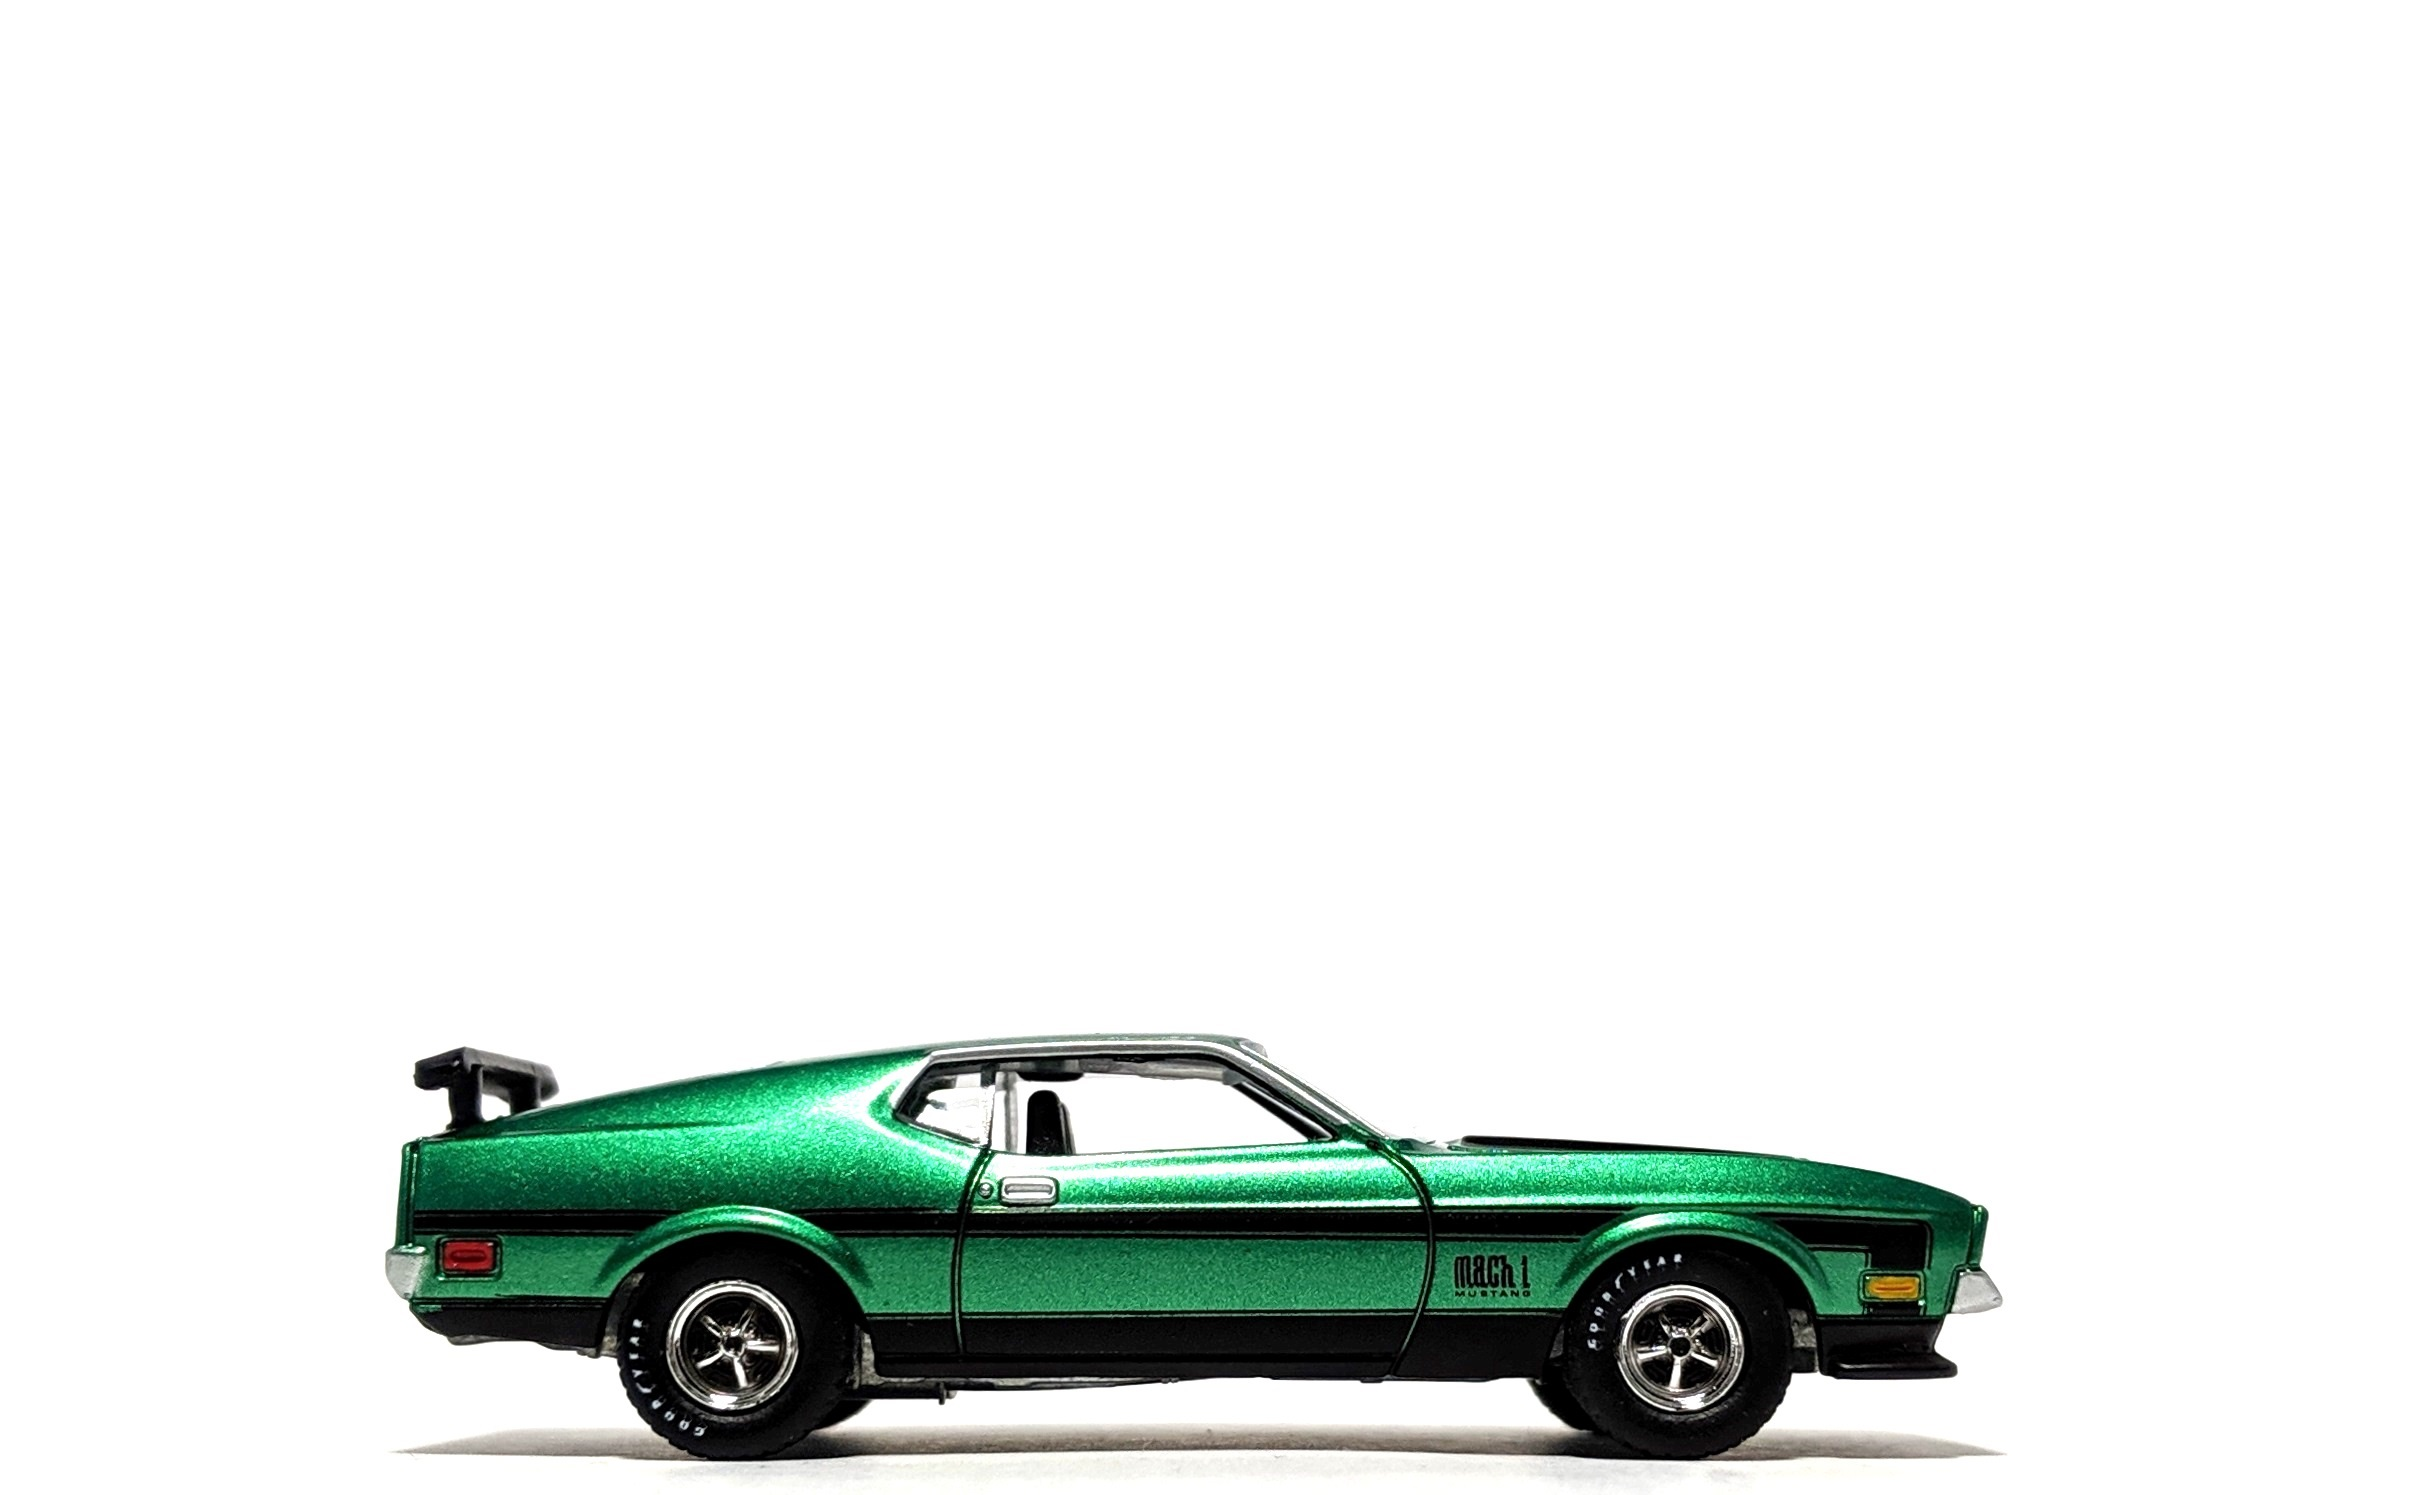 1971 Ford Mustang Mach 1 - Auto World